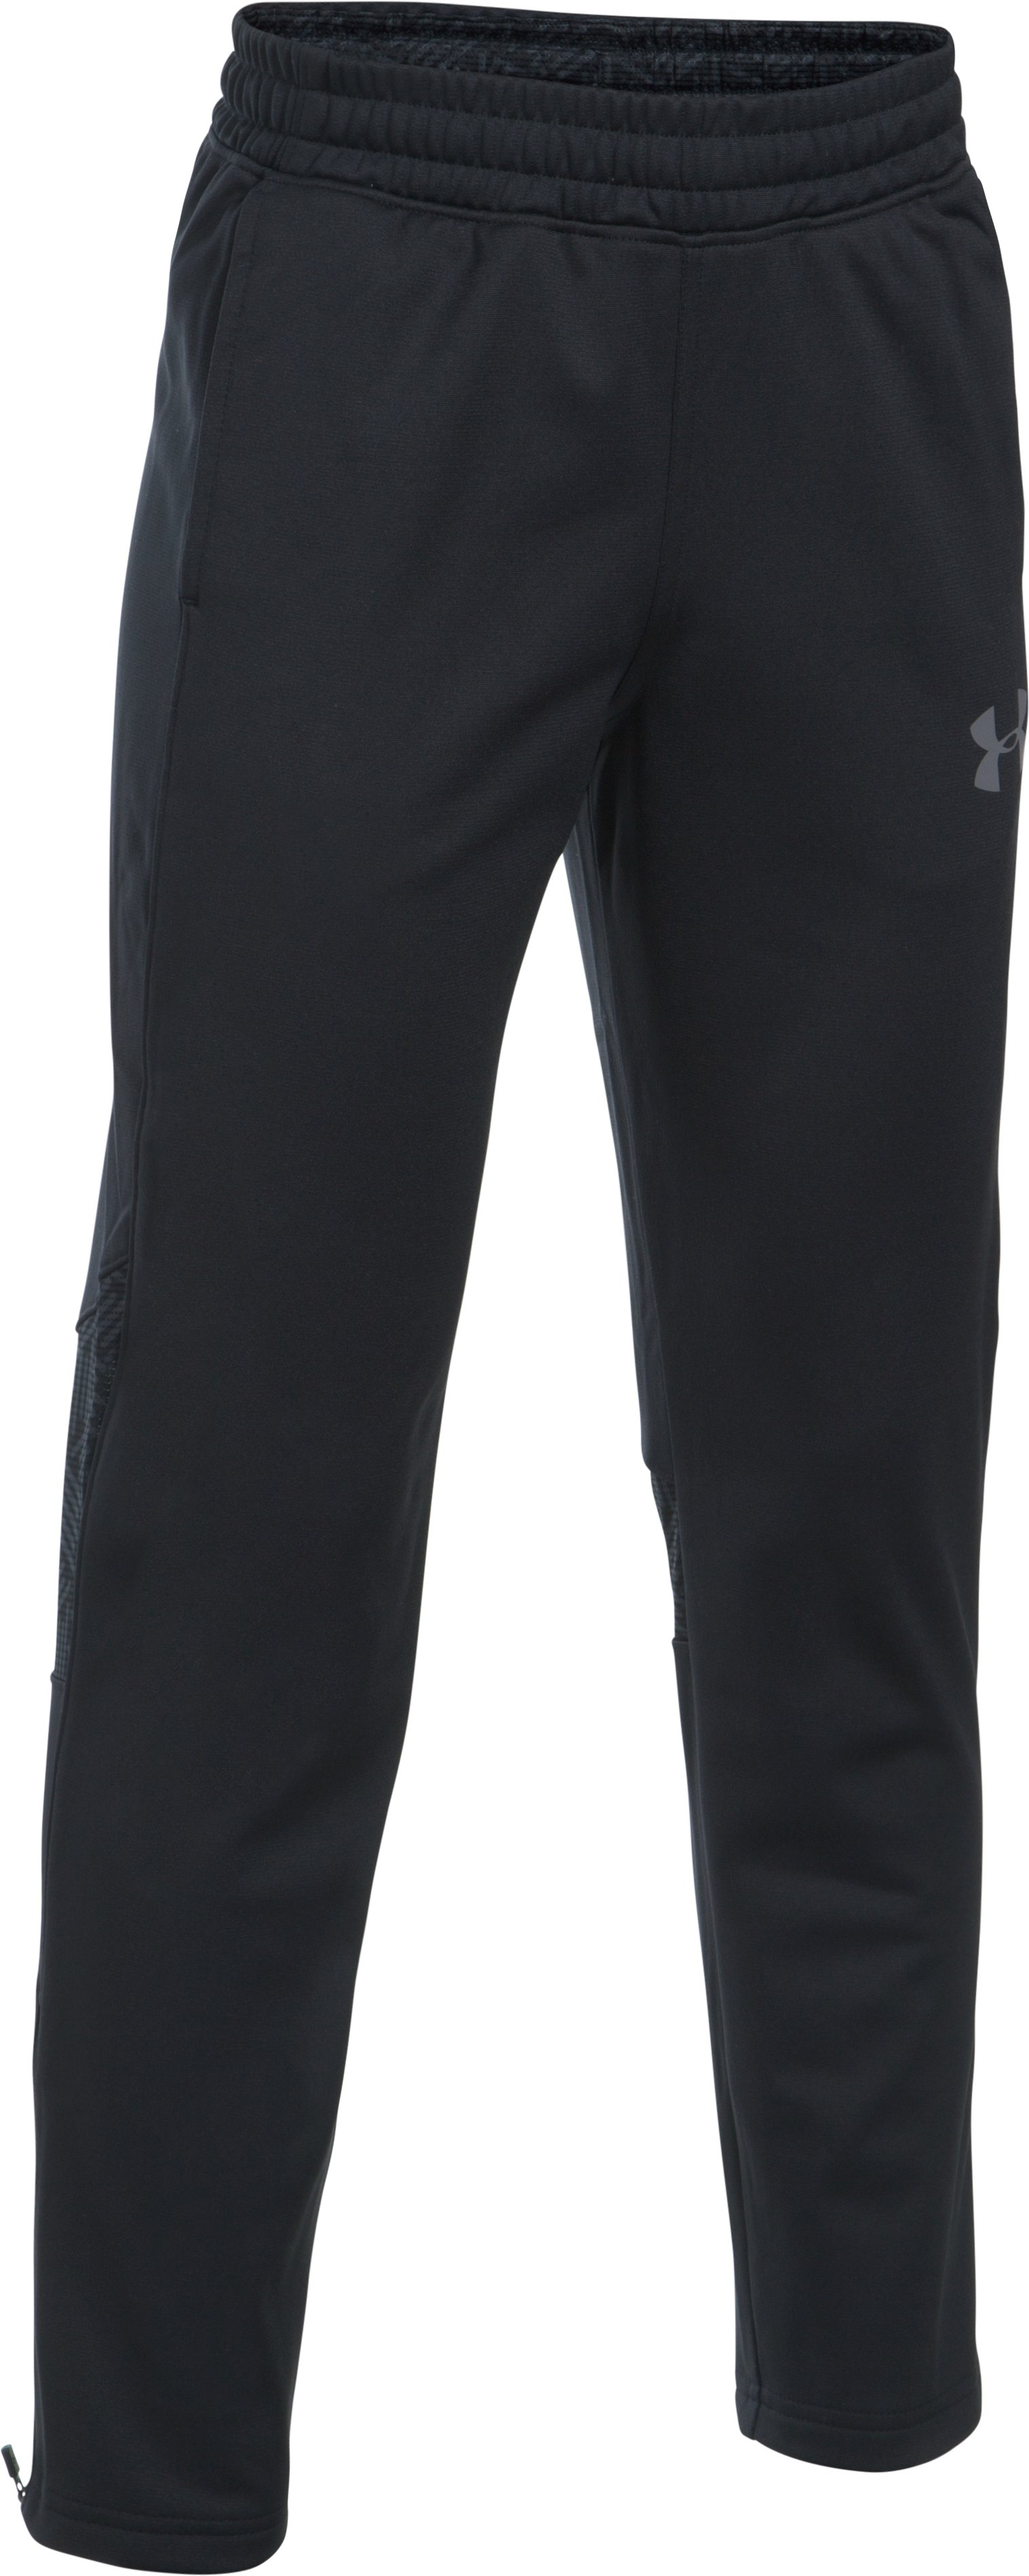 Boys' UA Select Warm-Up Pants, Black